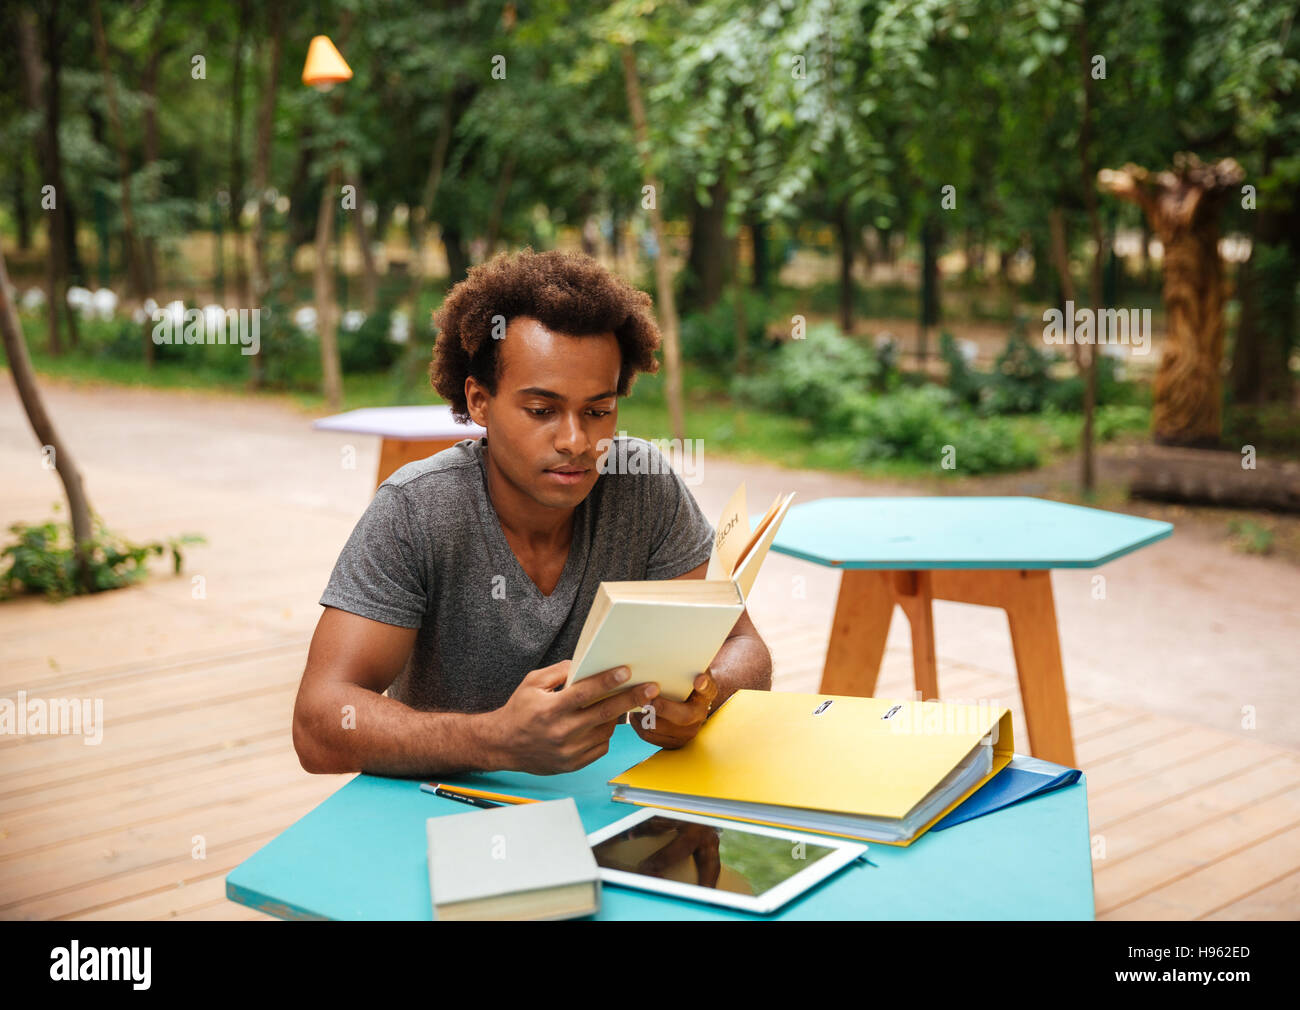 Serious african young man sitting and studying in the park - Stock Image